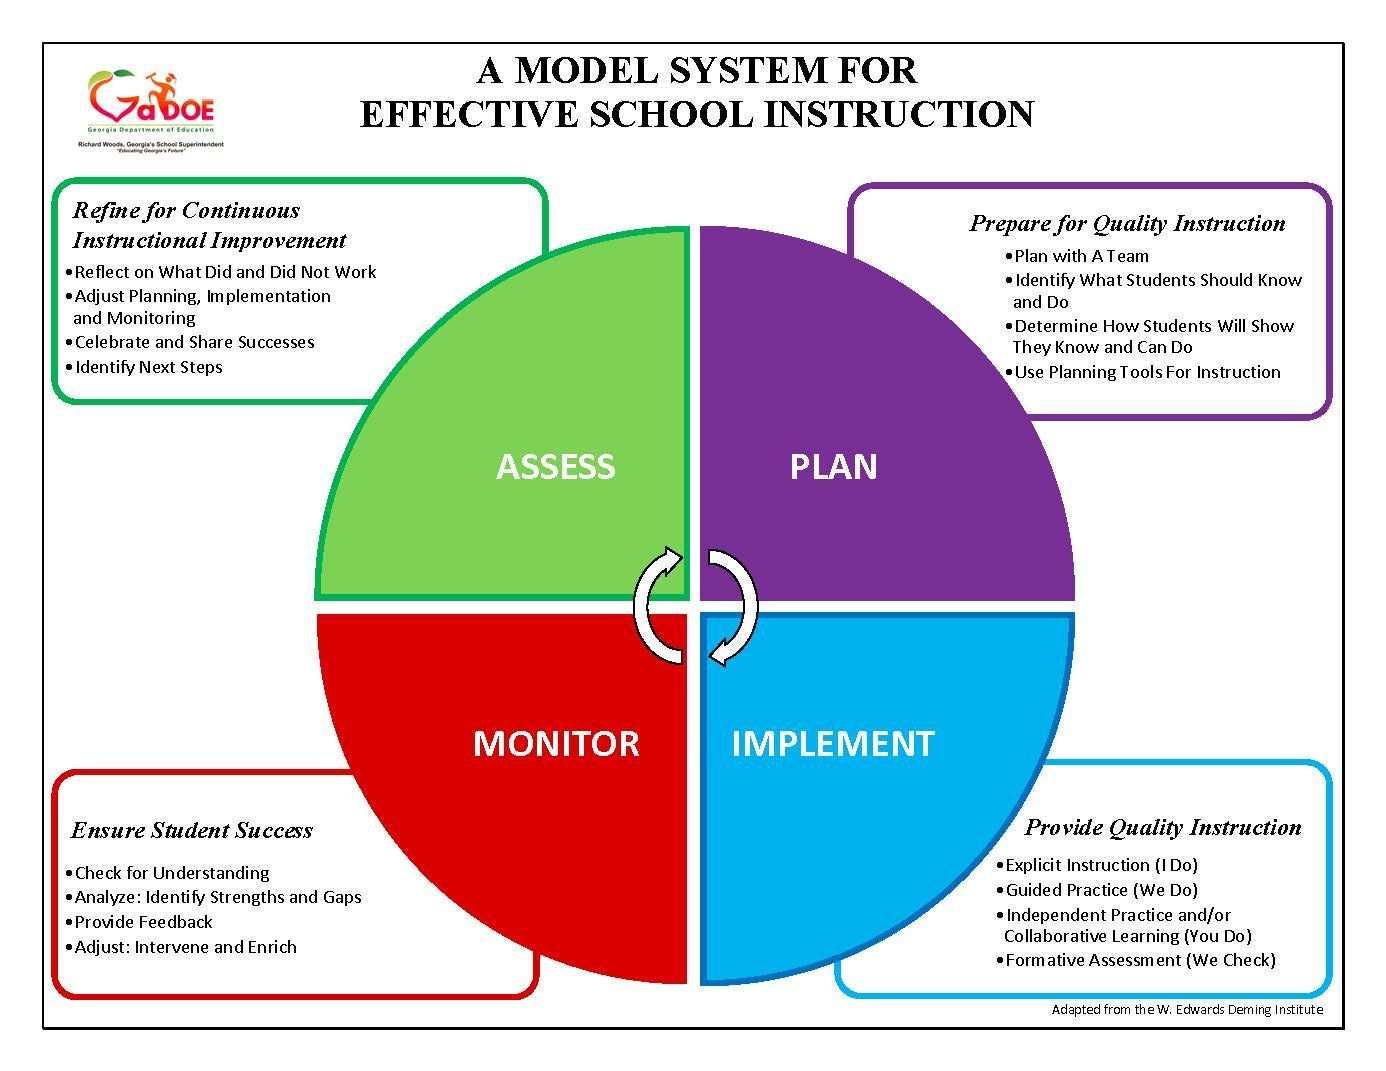 System For Effective School Instruction A Model Instructional Program School Instruction Curriculum [ 1071 x 1386 Pixel ]